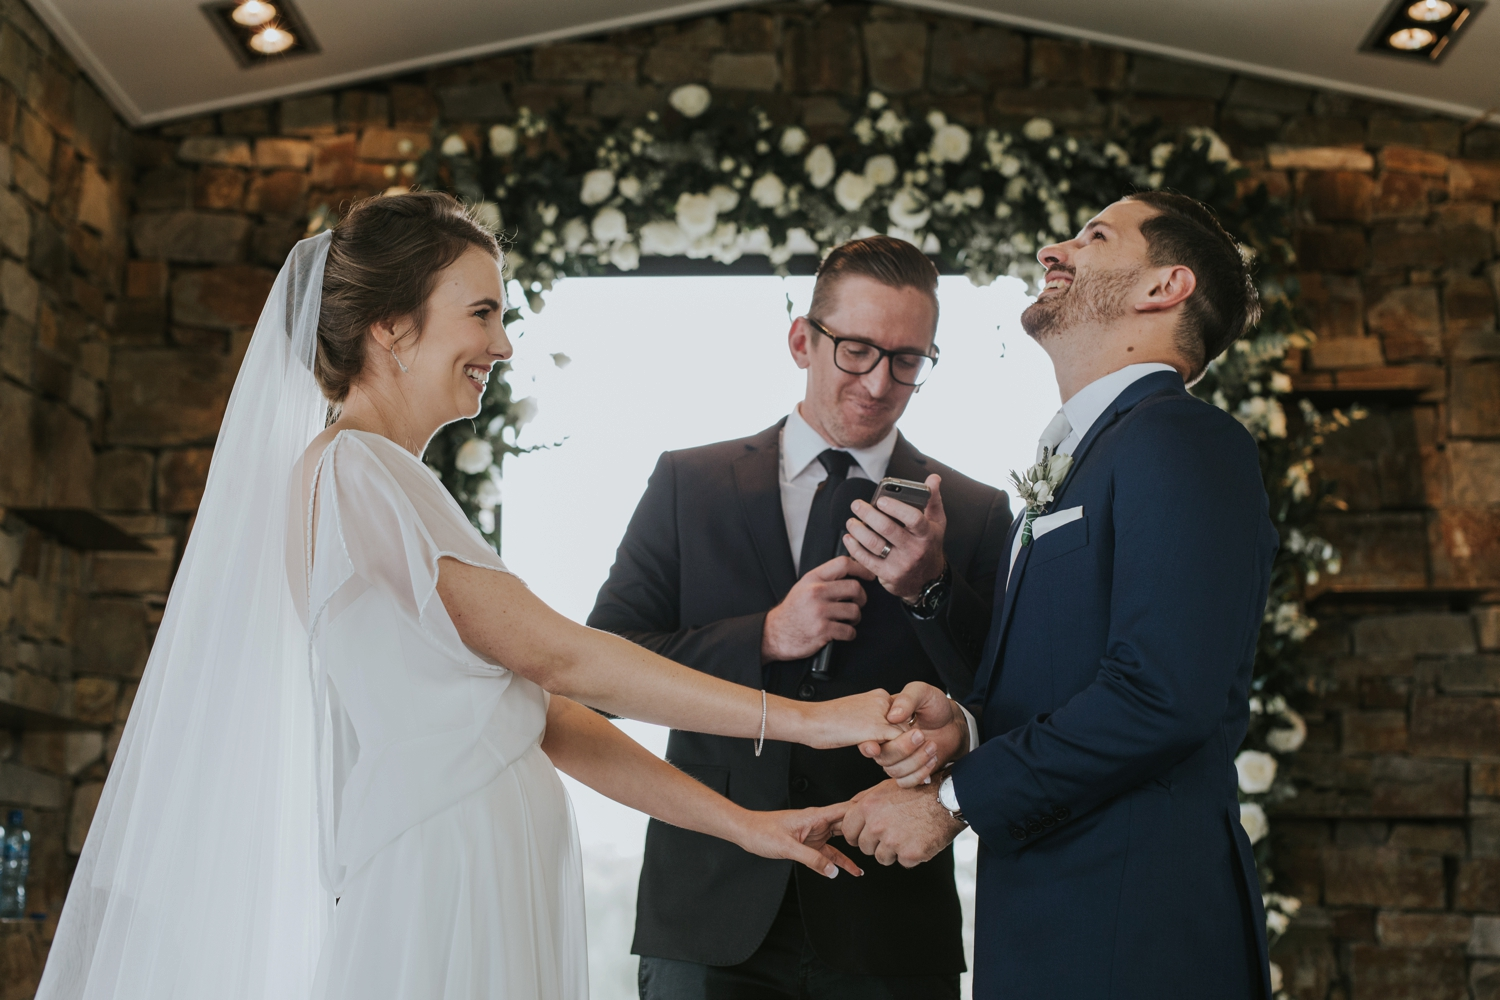 Bride and groom laughing together in Vancouver wedding ceremony